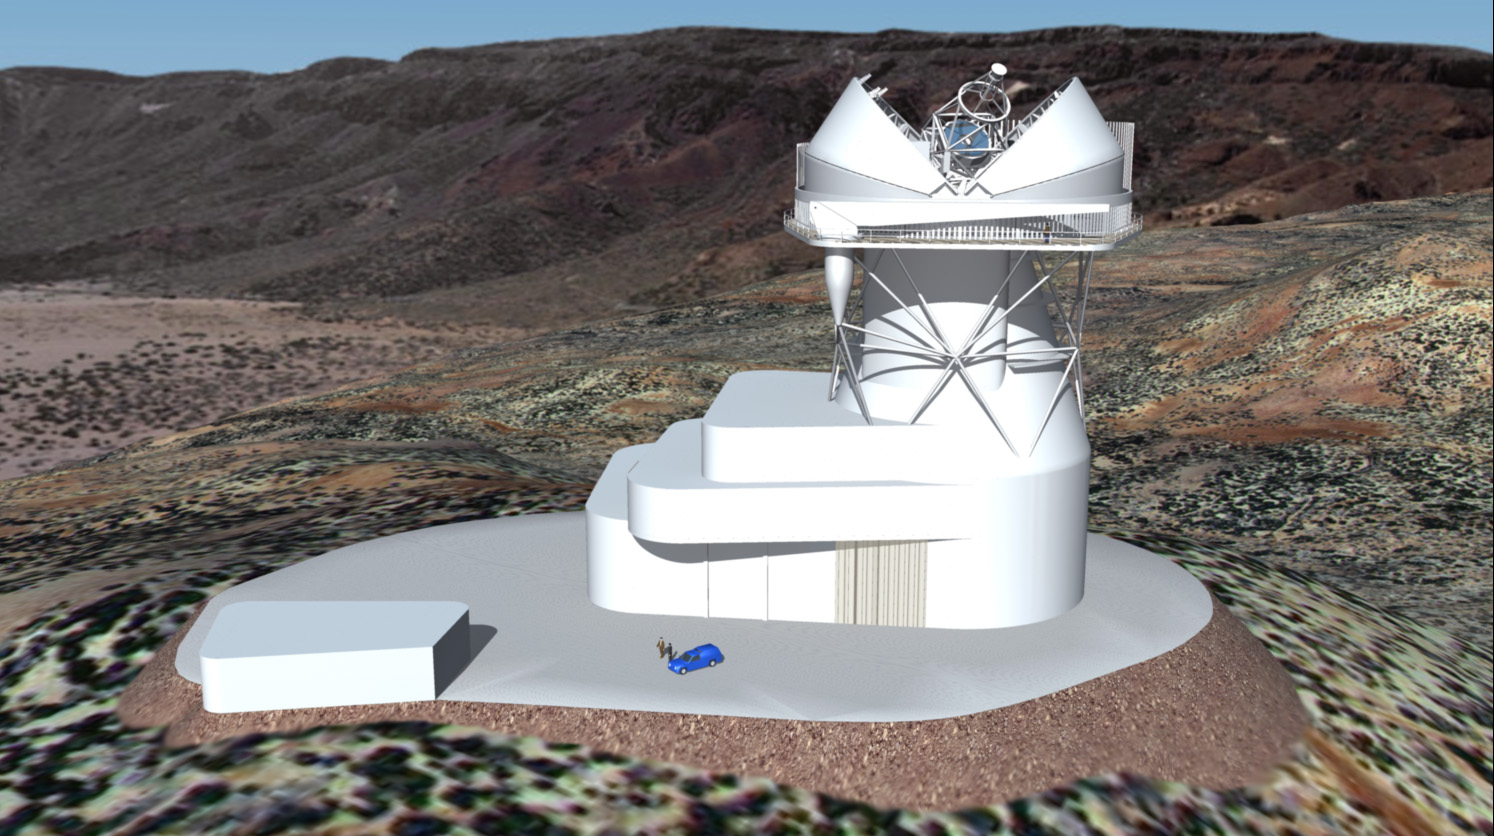 Image simulation of the European Solar Telescope final look